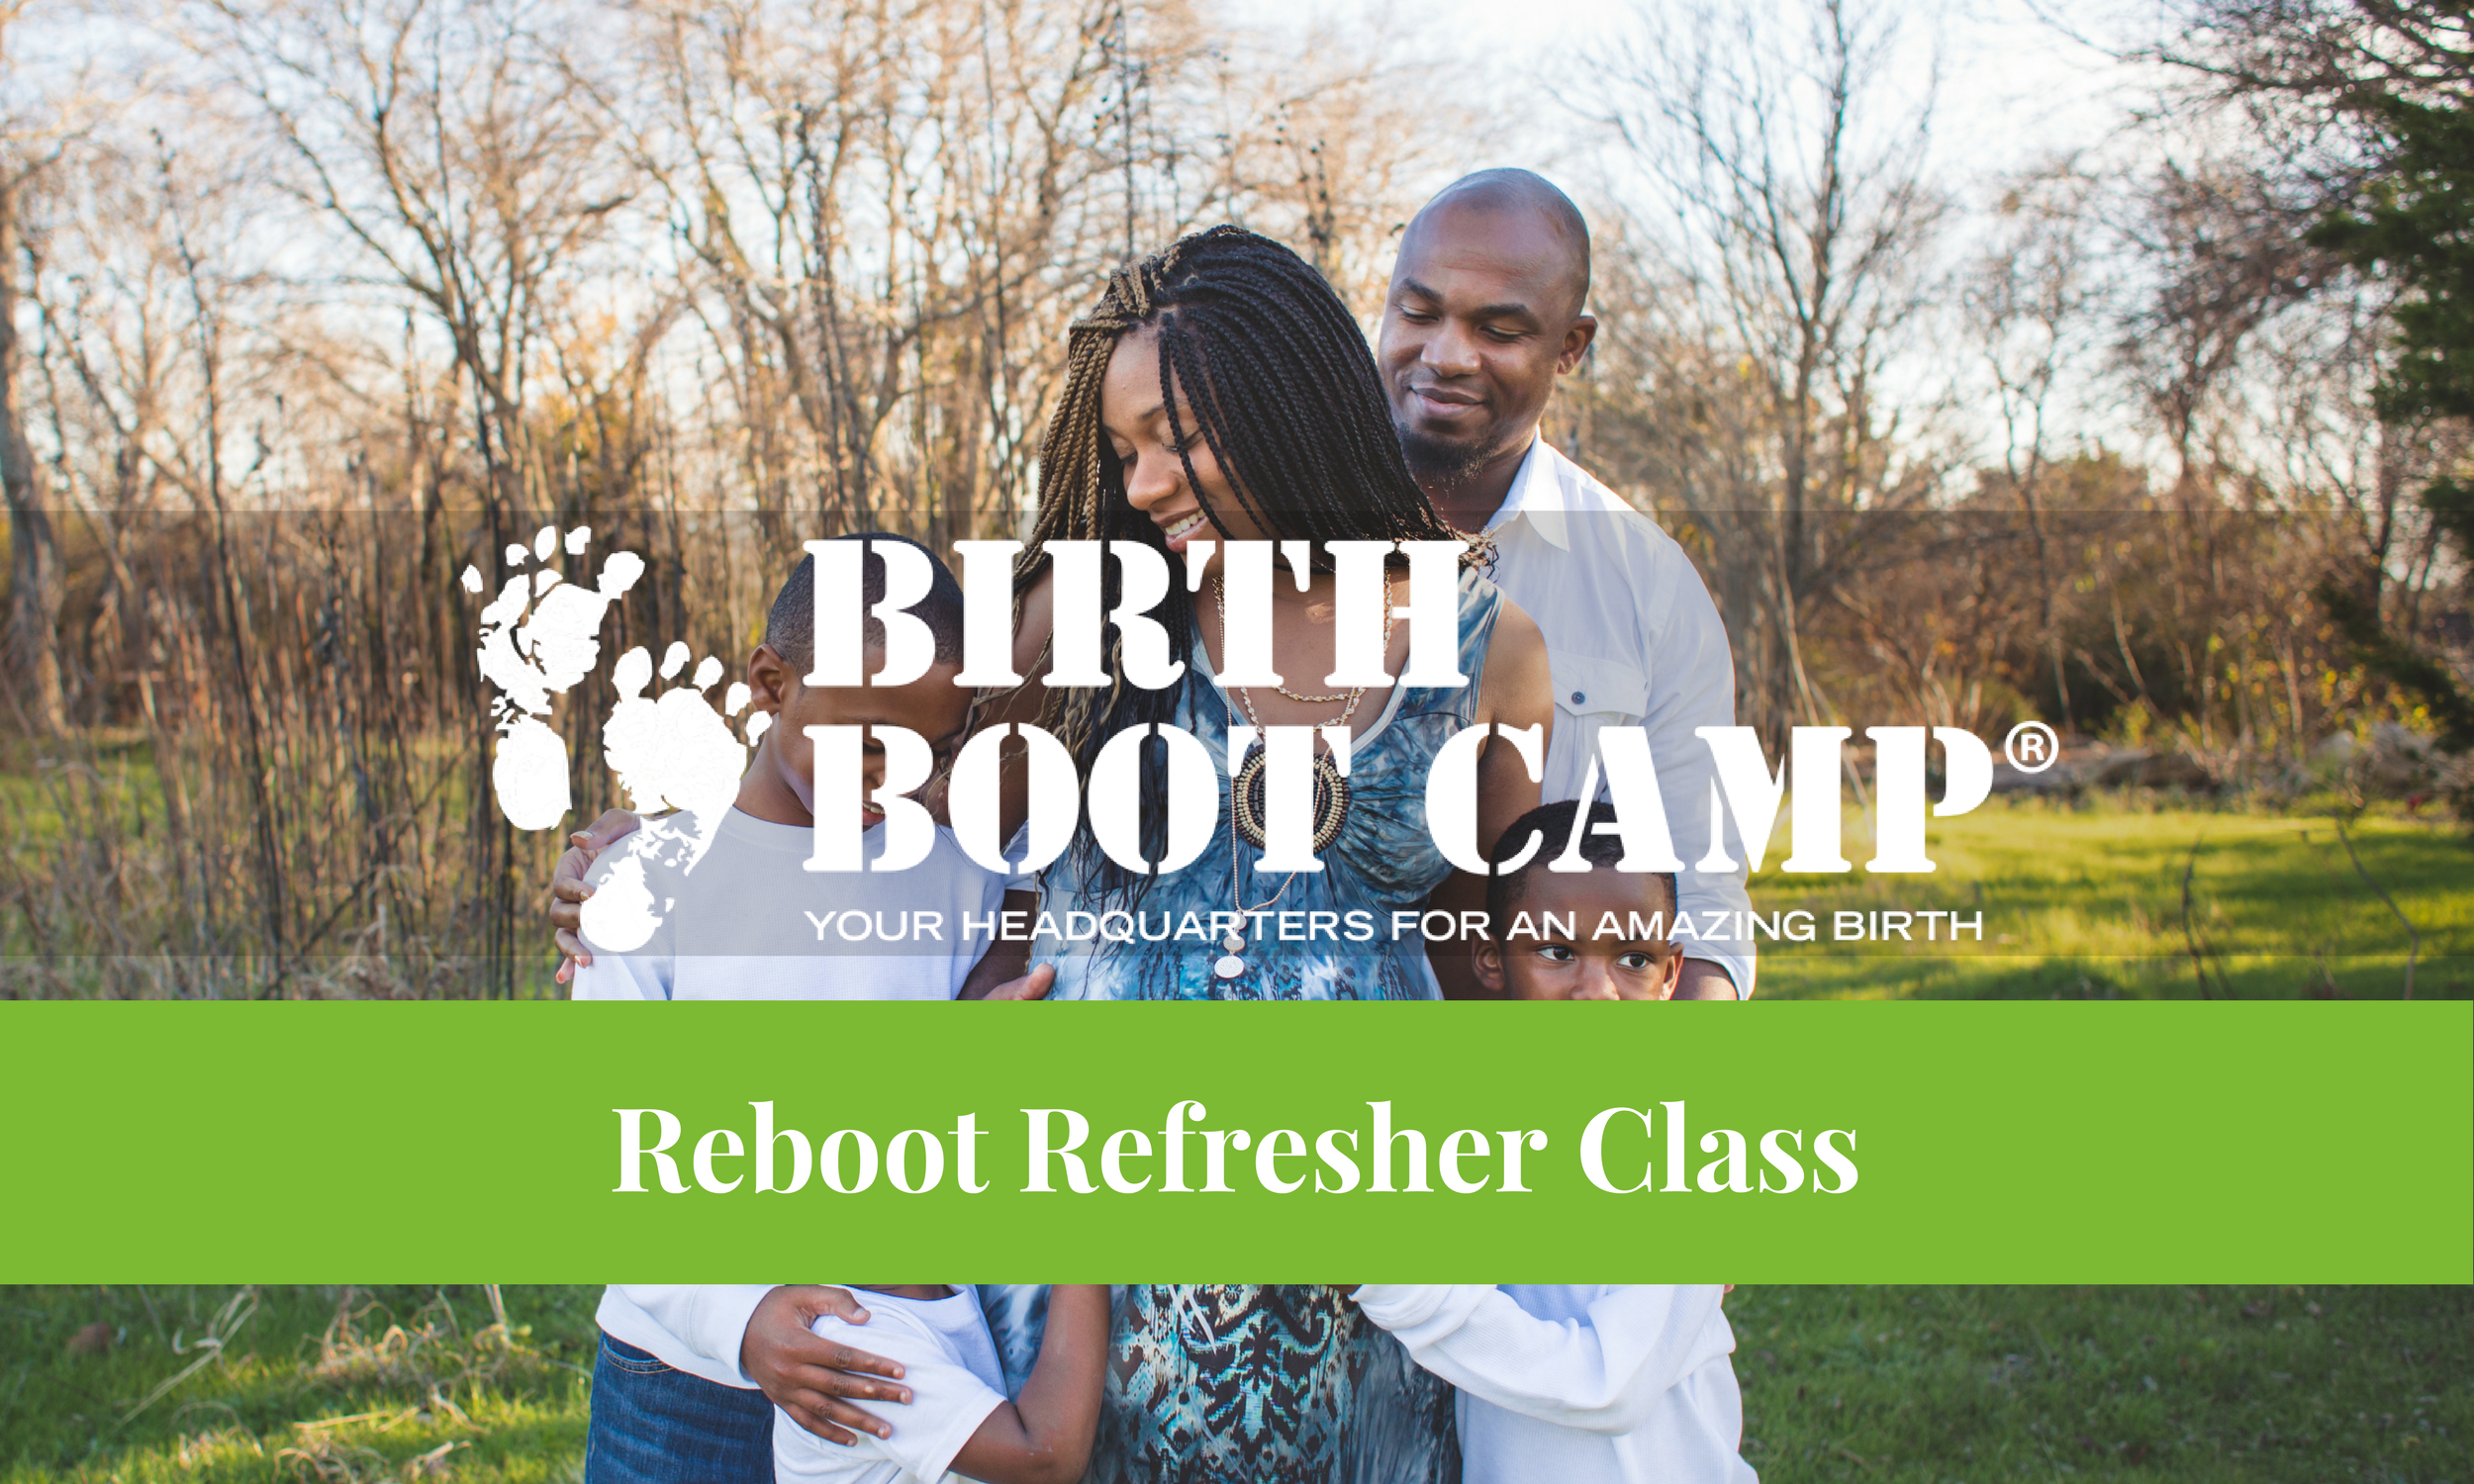 Birth Boot Camp Reboot Refresher Online Class